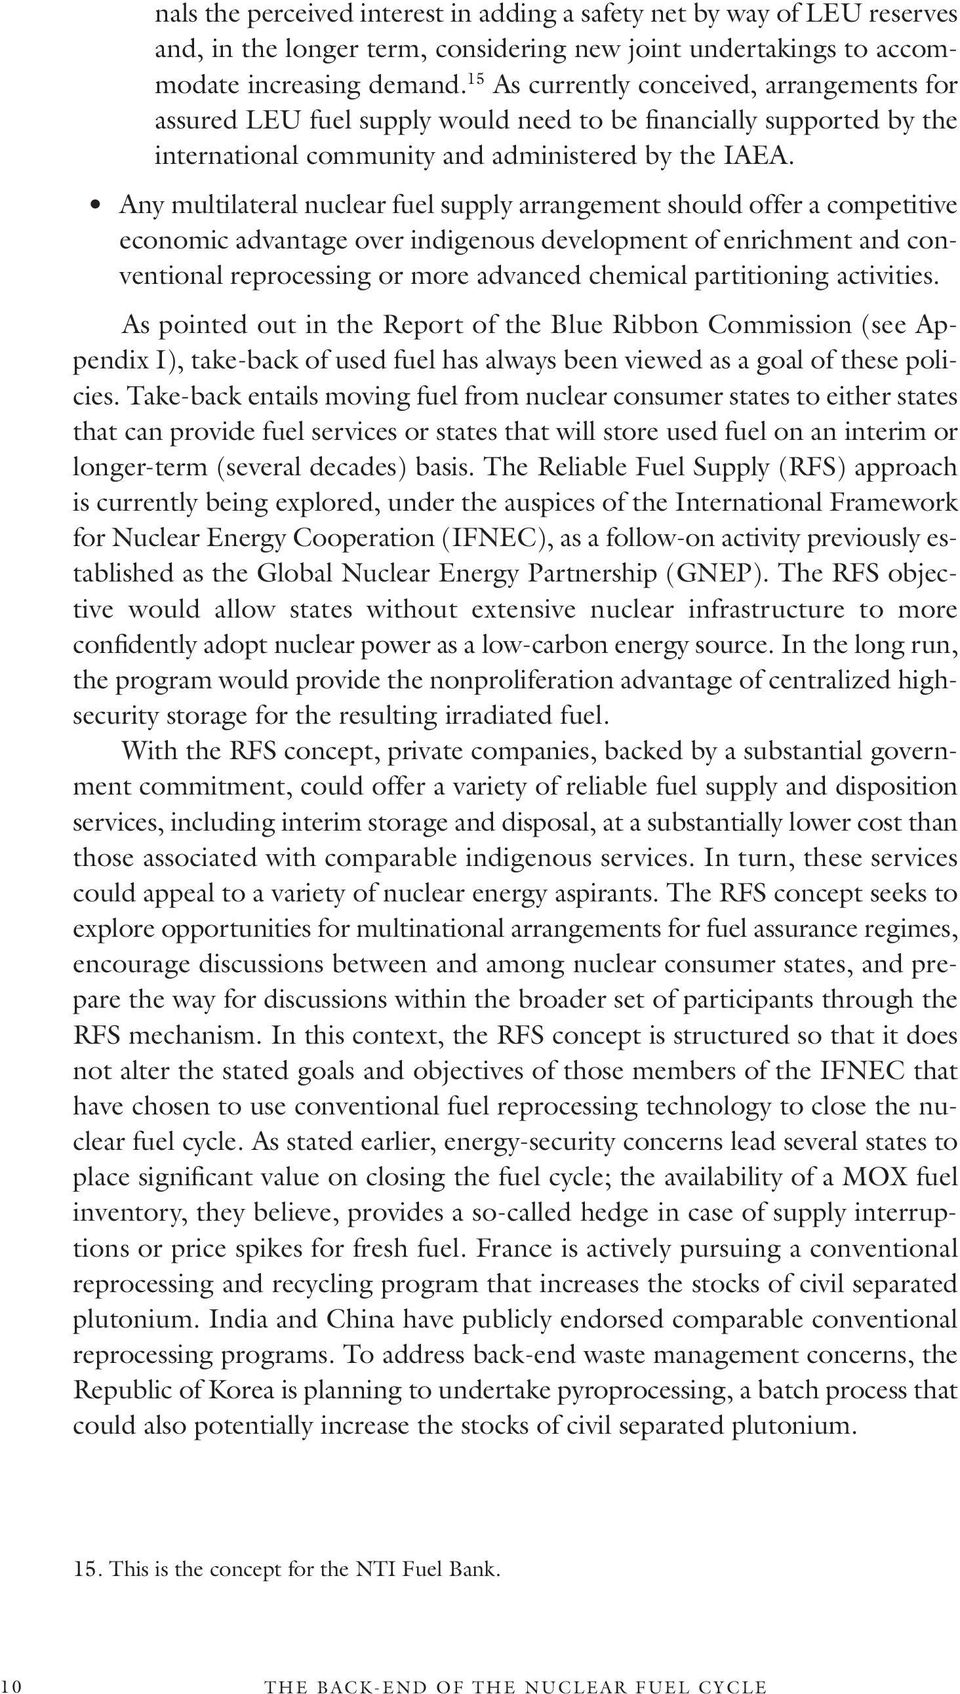 Any multilateral nuclear fuel supply arrangement should offer a competitive economic advantage over indigenous development of enrichment and conventional reprocessing or more advanced chemical